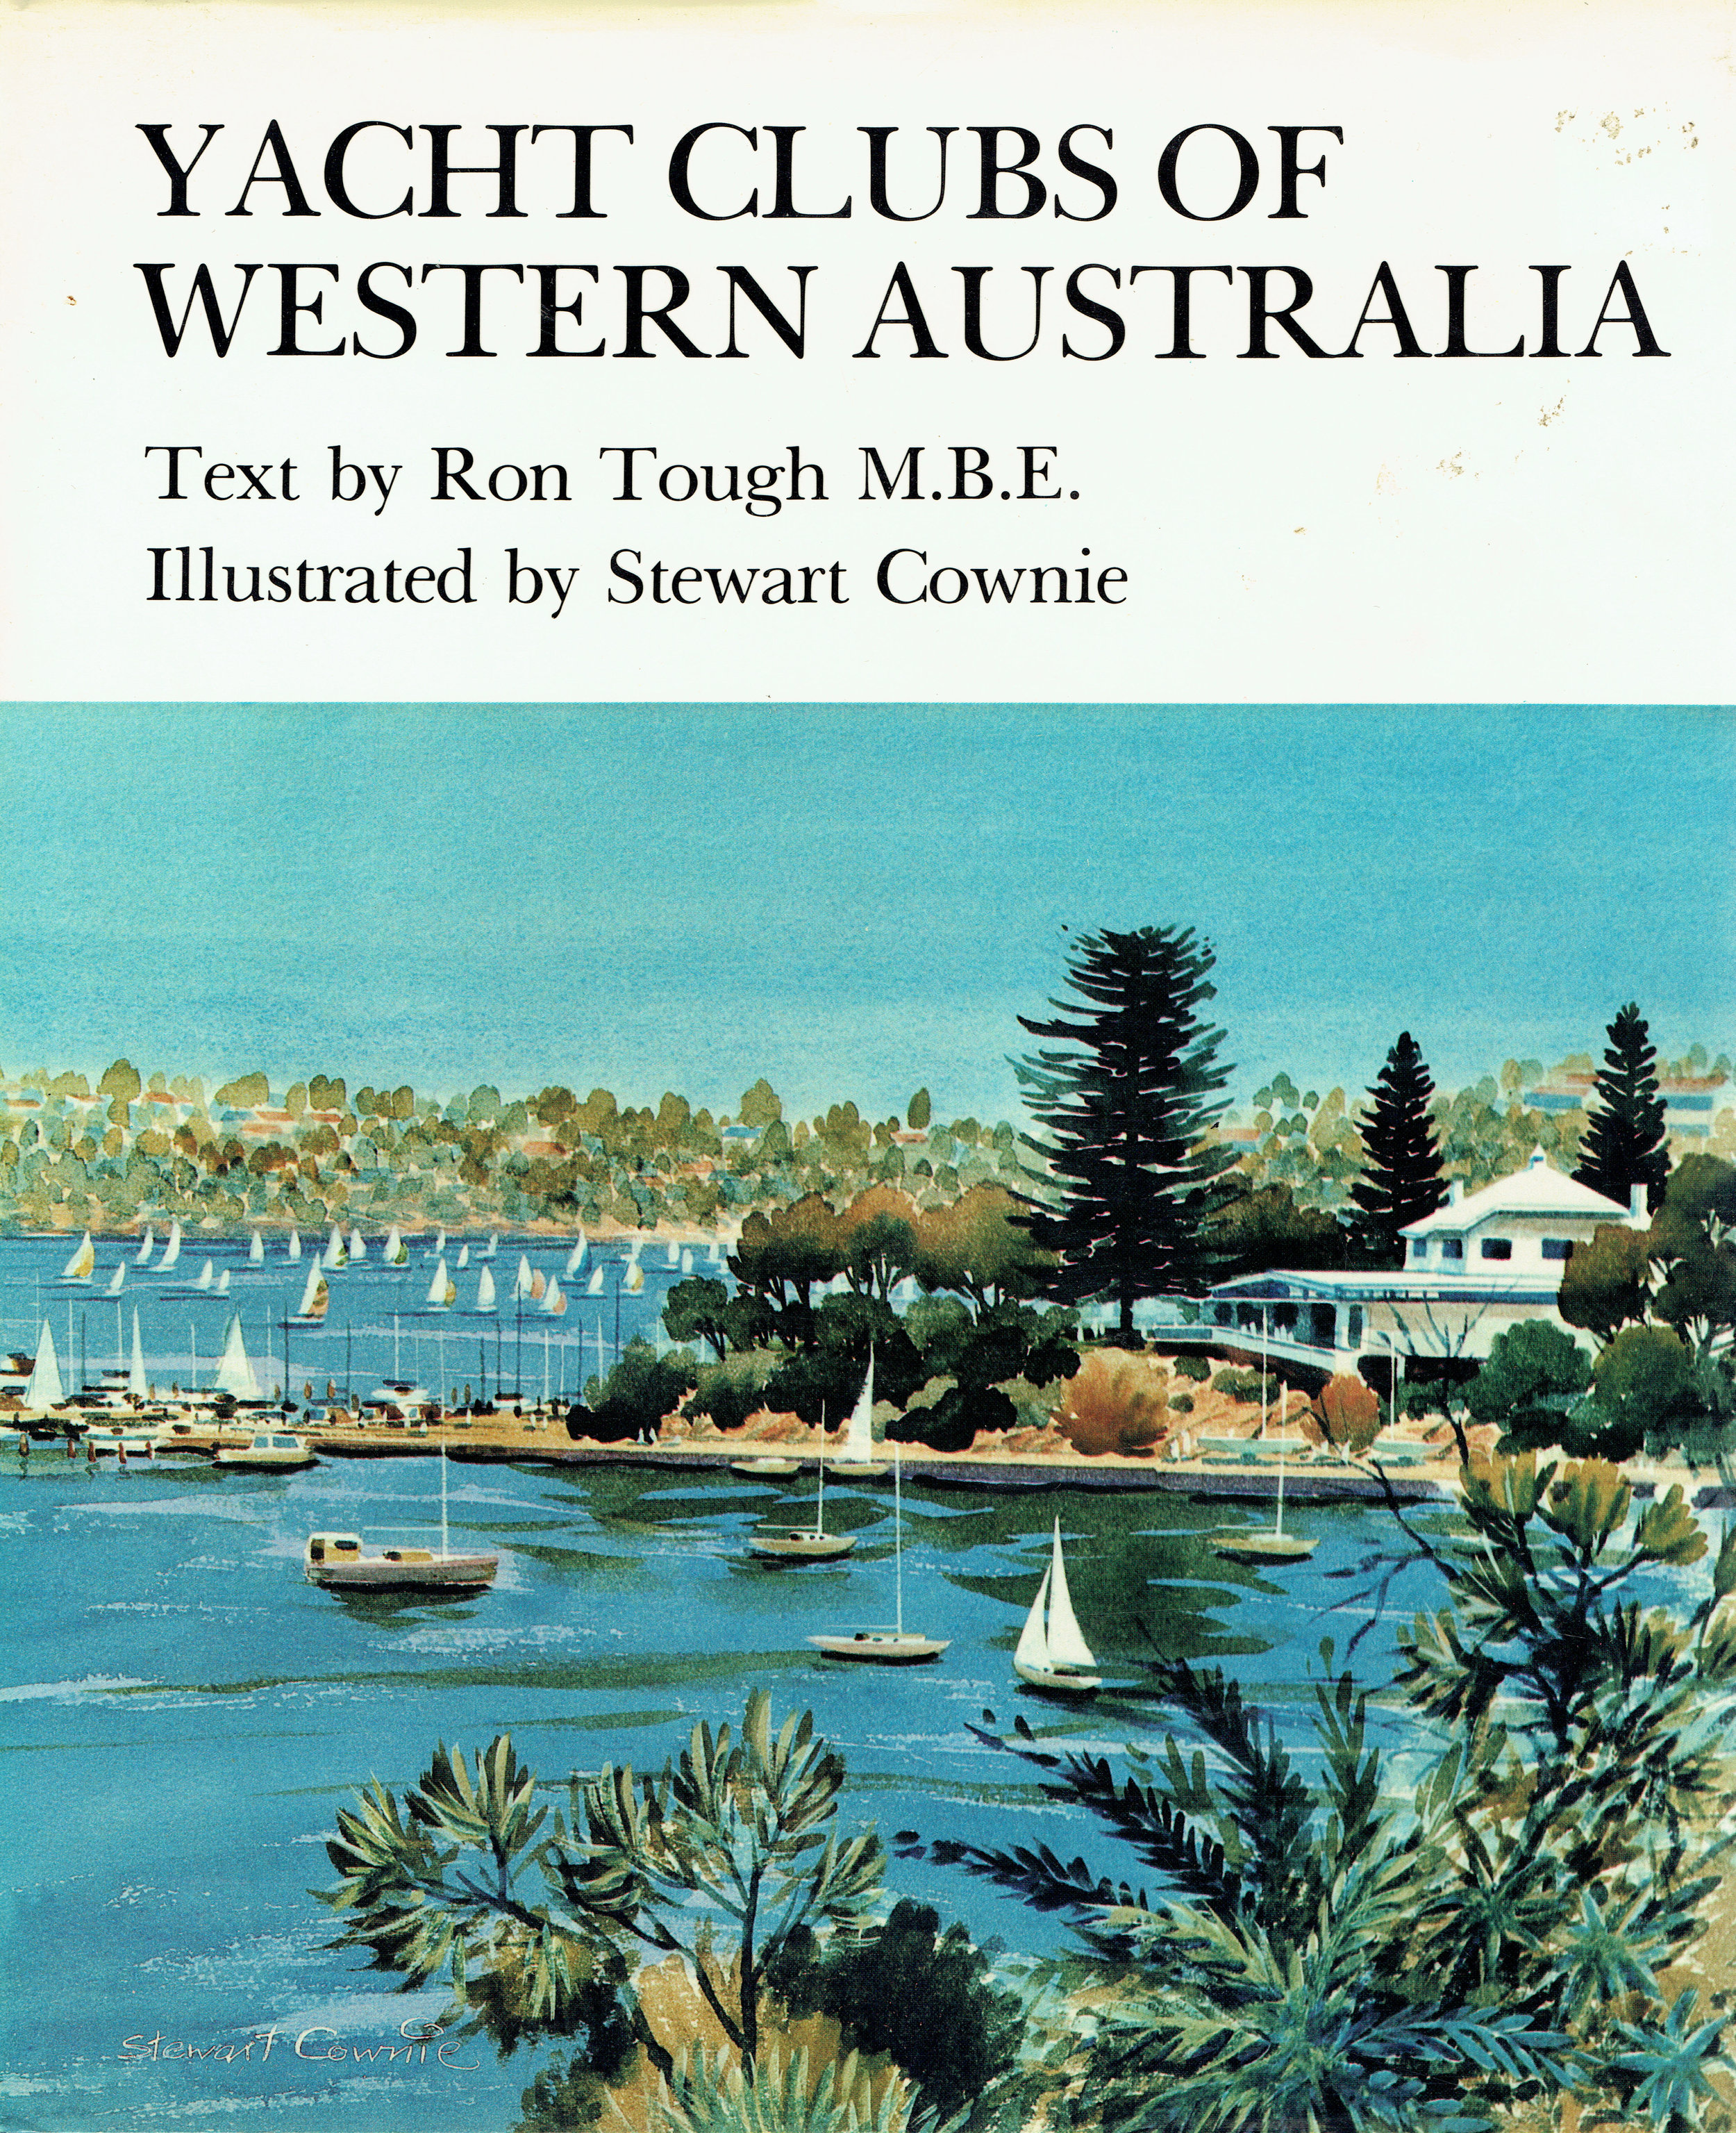 Yacht clubs of Western Australia : a historical and pictorial record  Text by Ron Tough ; illustrated by Stewart Cownie.